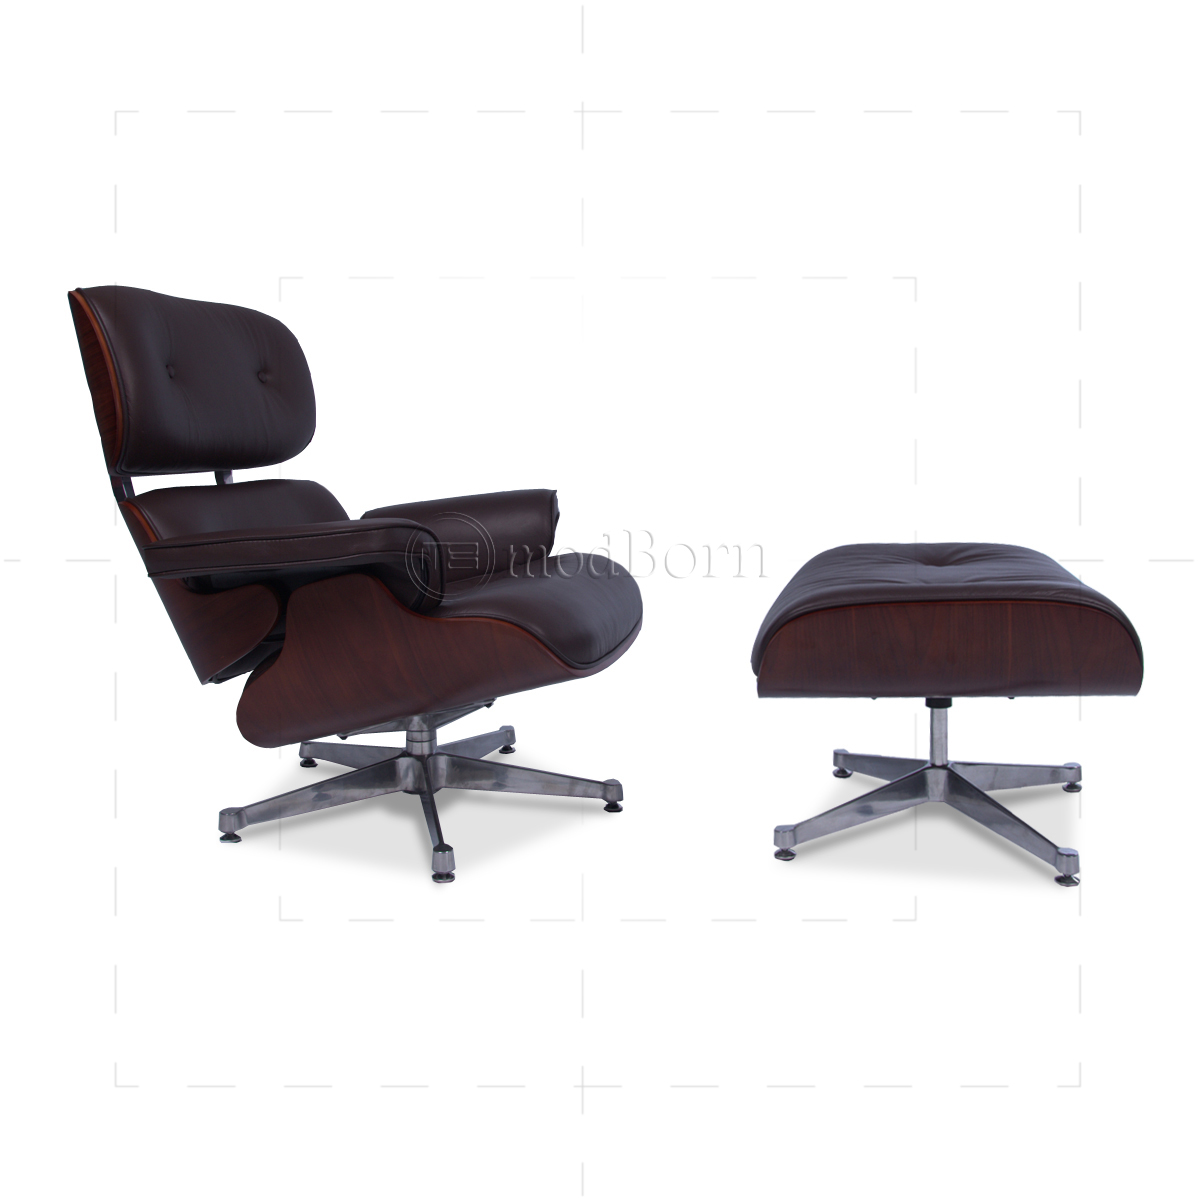 Eames style lounge chair and ottoman brown leather cherry for Eames chair replica deutschland